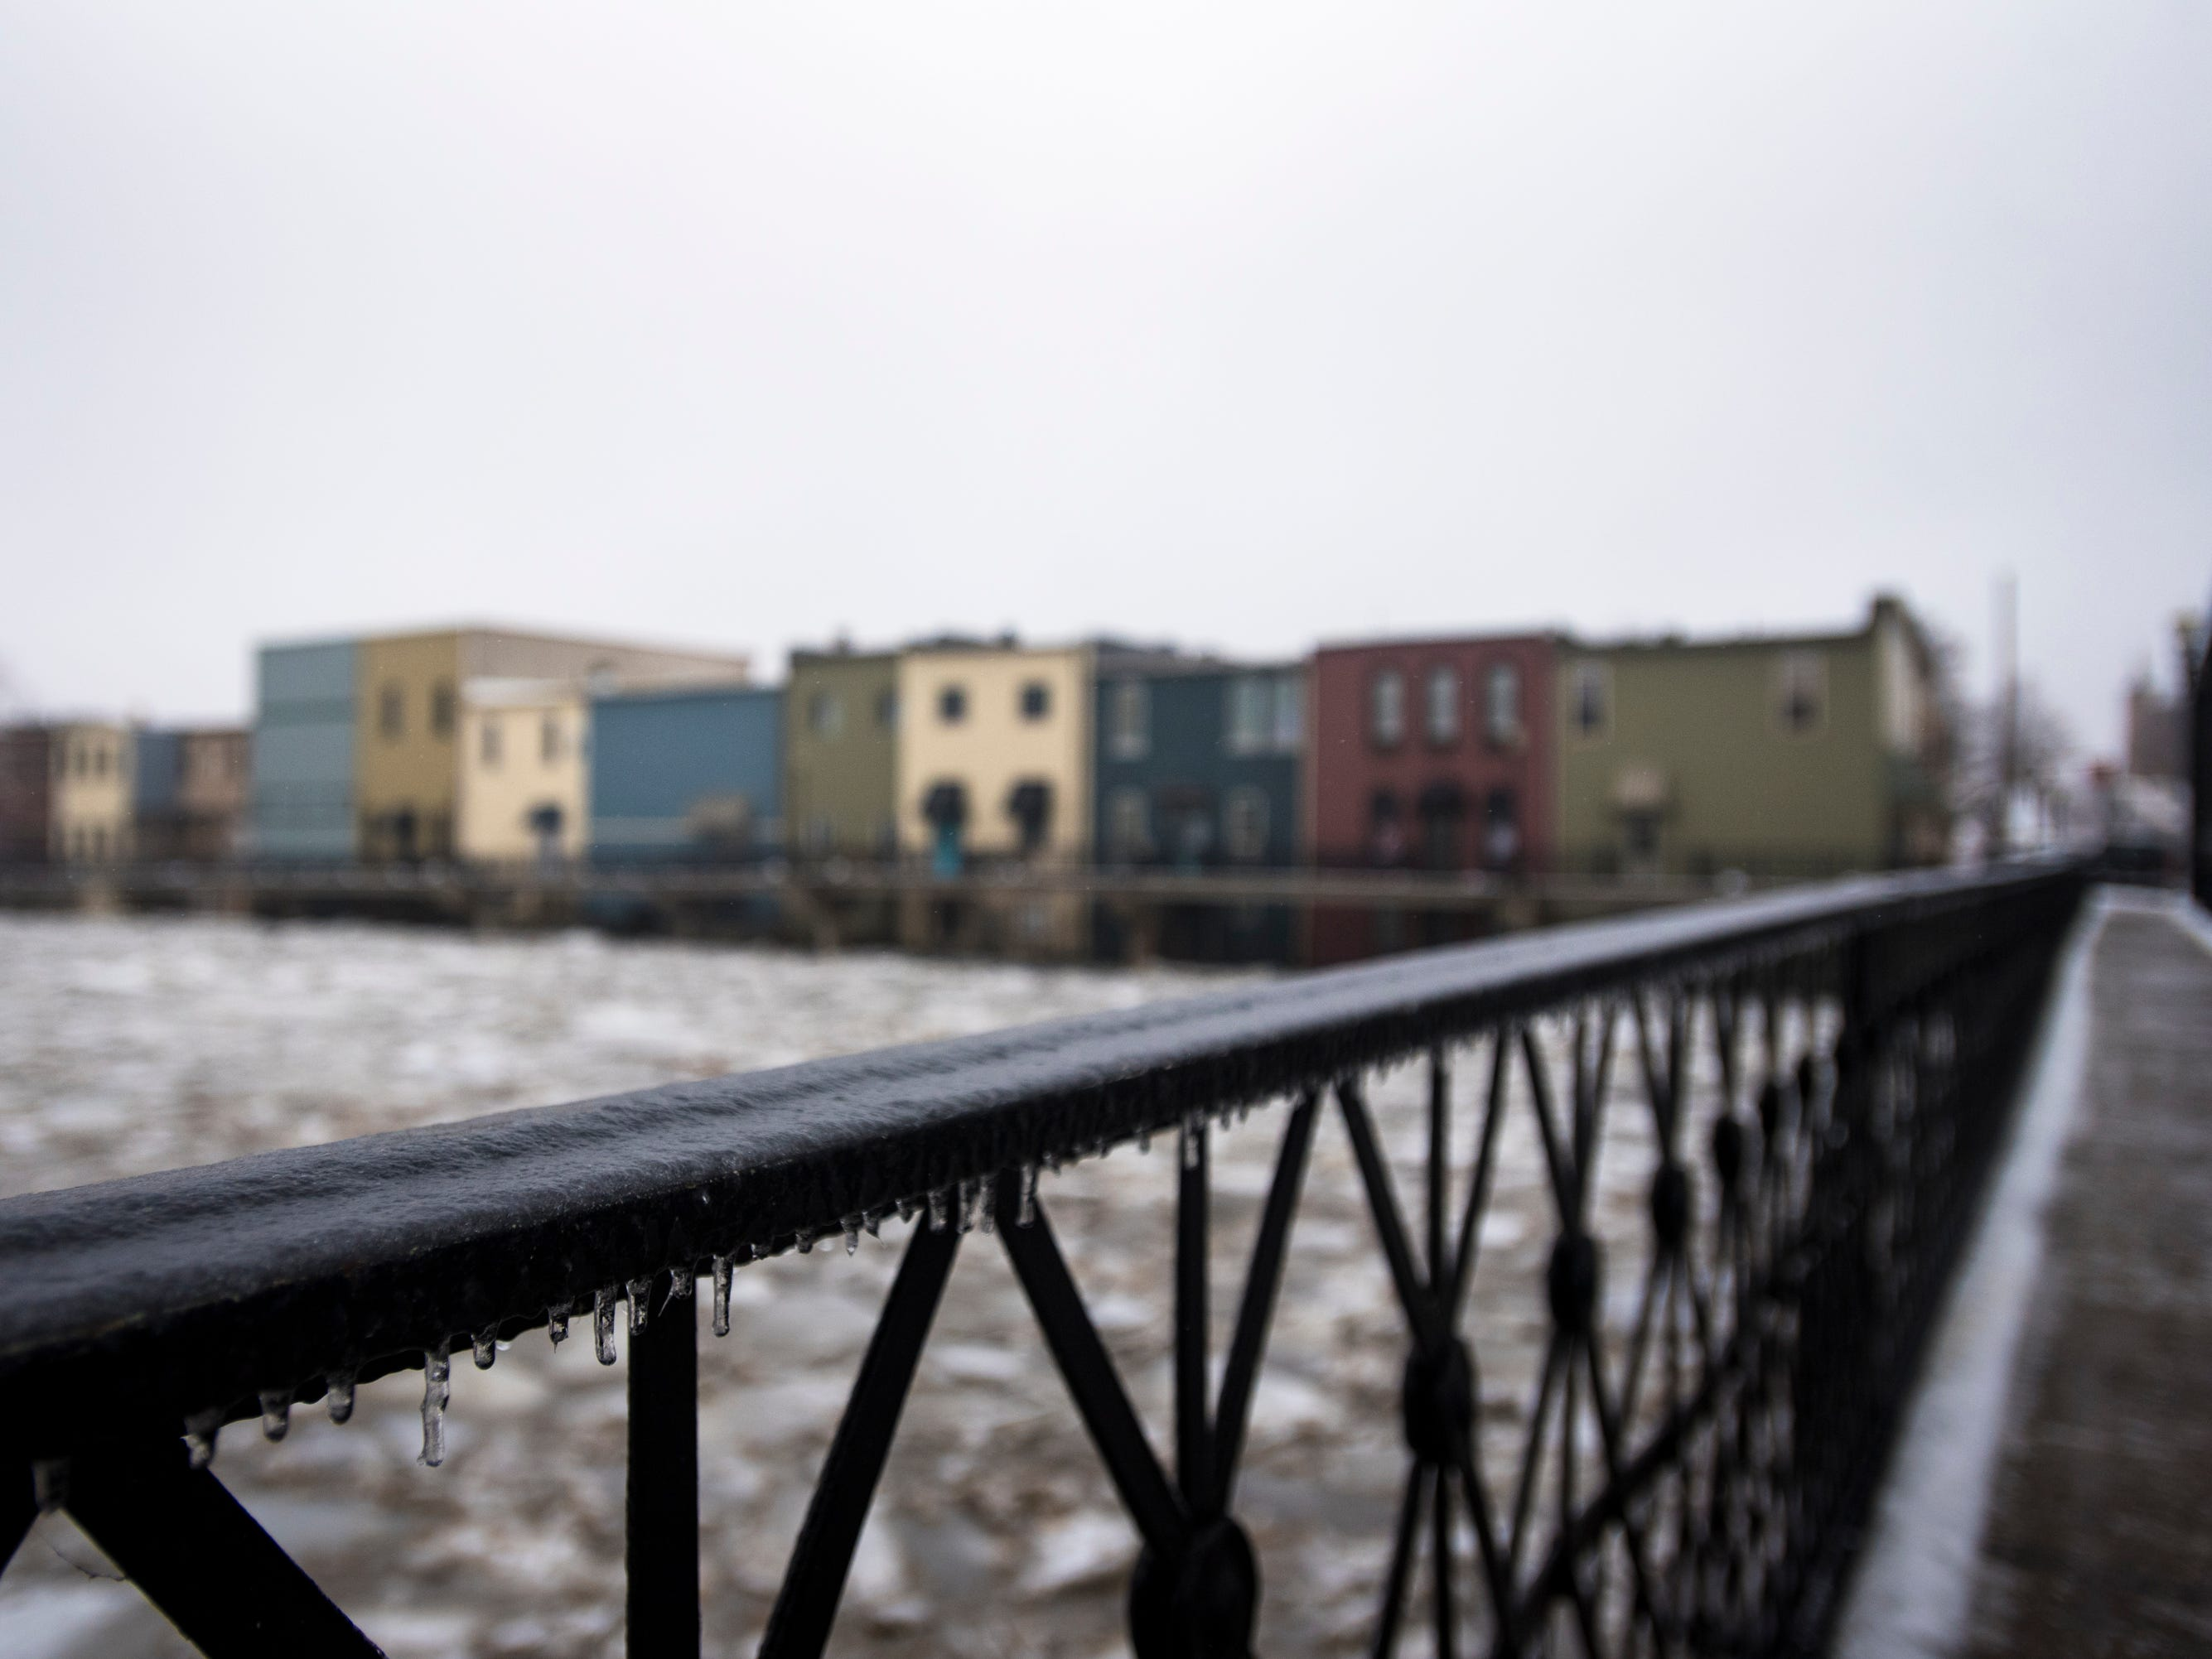 Downtown Portland, Michigan and the Grand River, Wednesday morning, Feb. 6, 2019.  About 50 people were evacuated late Tuesday evening through early Wednesday morning due to flooding along the Grand River caused by melting snow and an ice jam in the river.  [Matthew Dae Smith/Lansing State Journal]